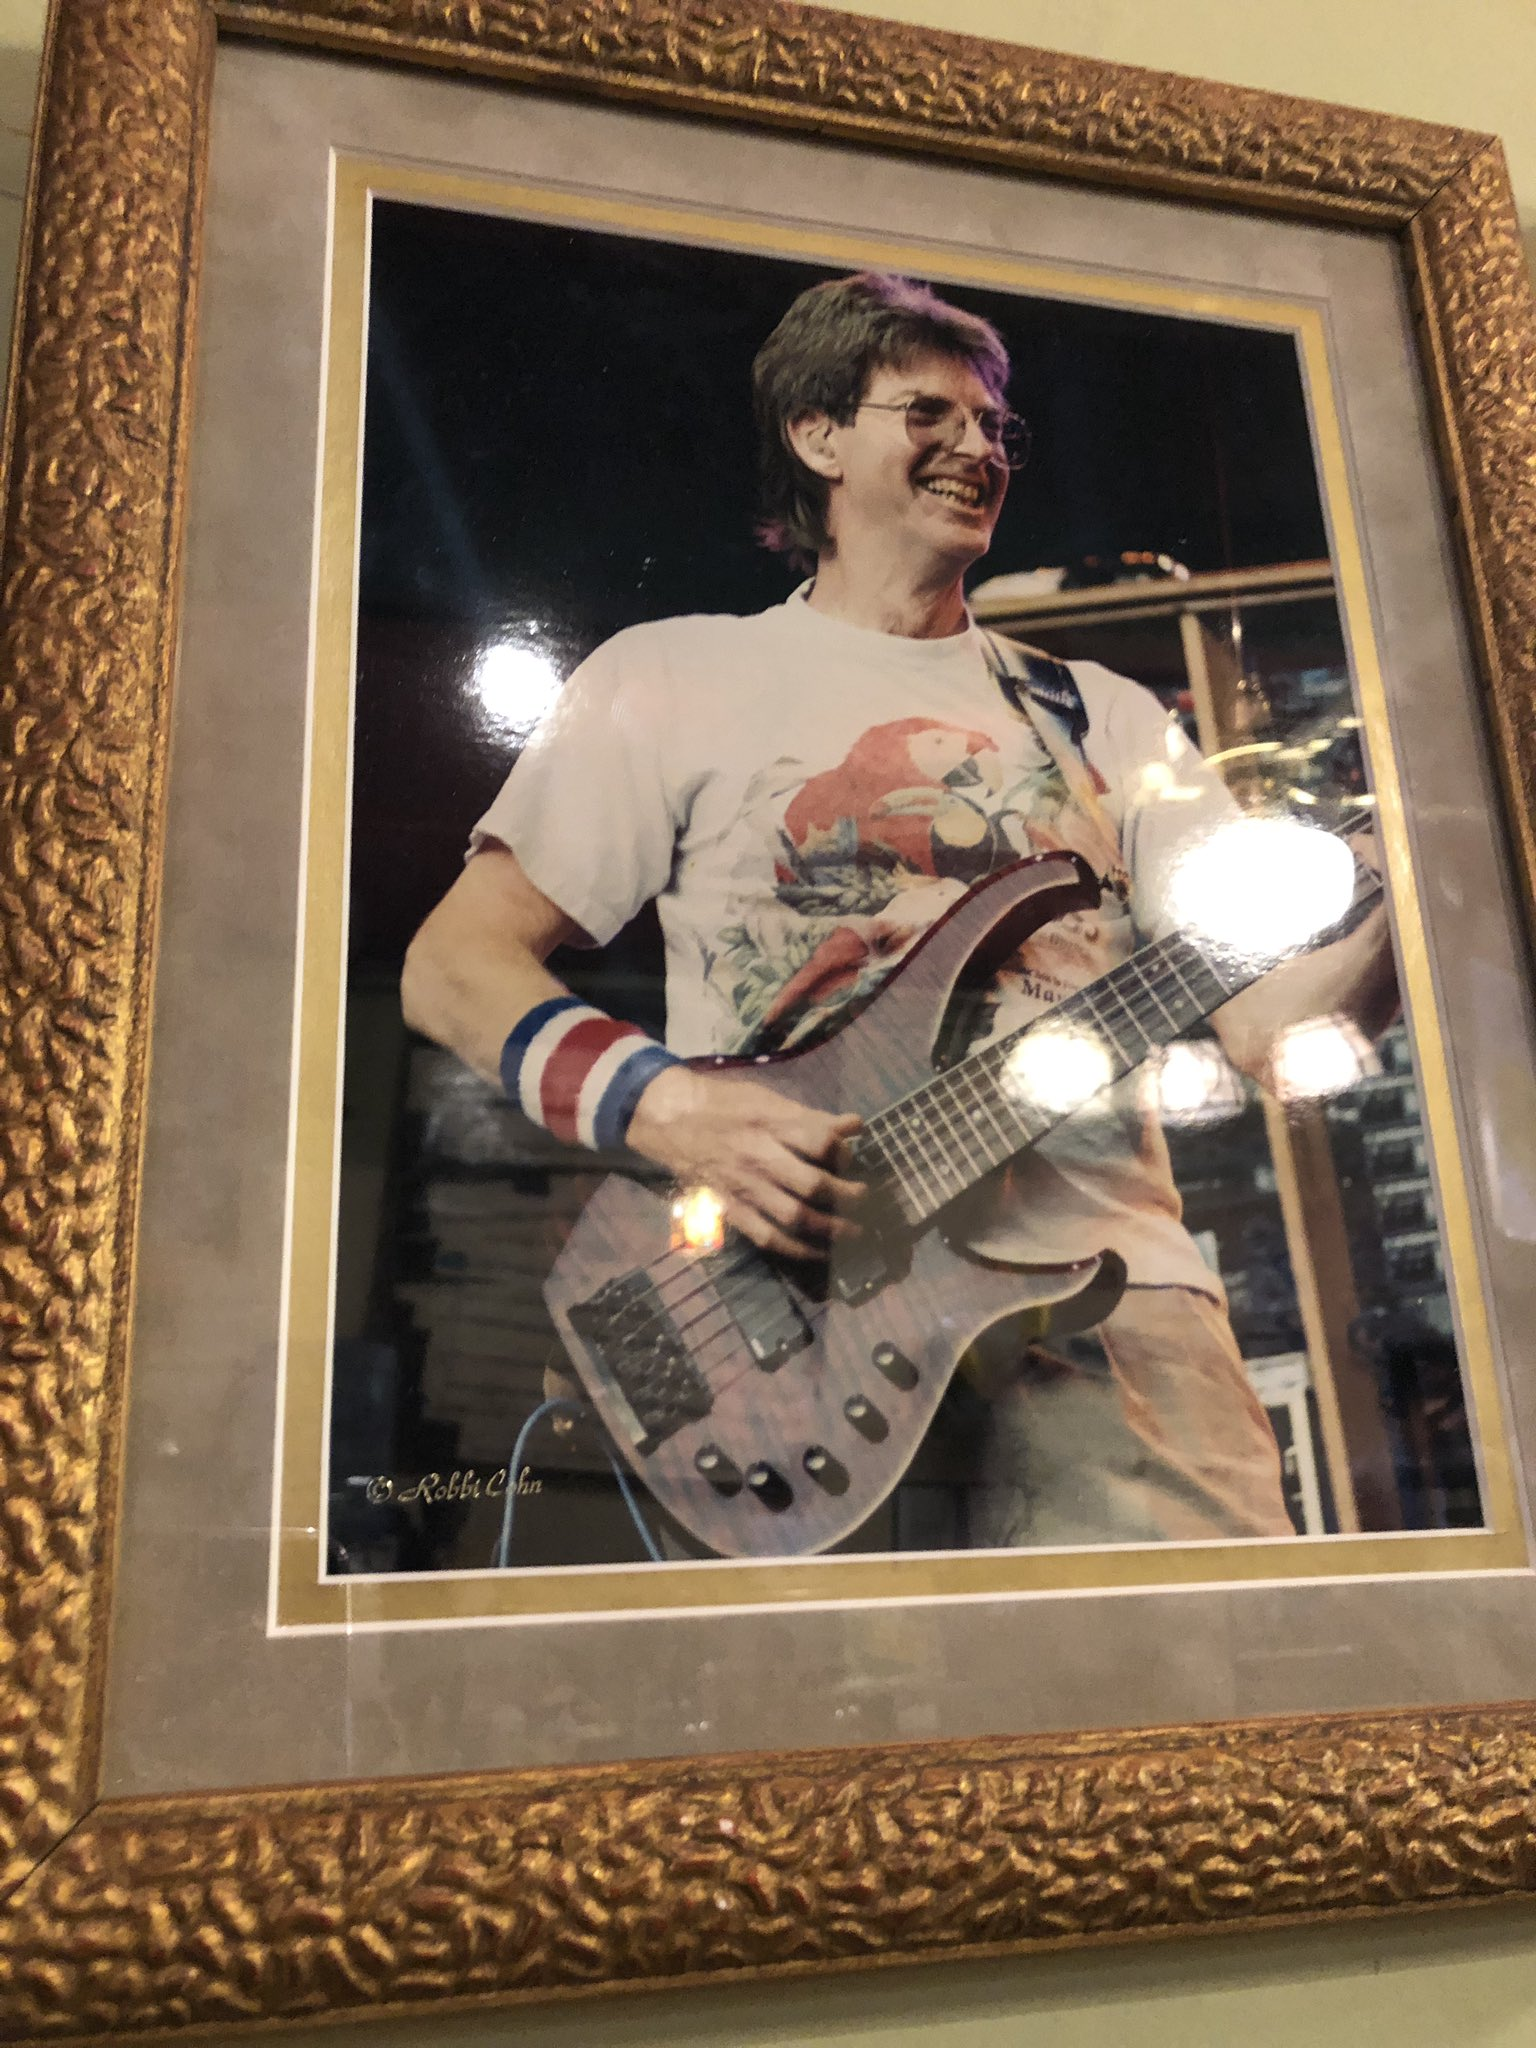 Happy birthday, Phil Lesh! found this pic of him on the wall at Tate Street Coffee this morning :-)